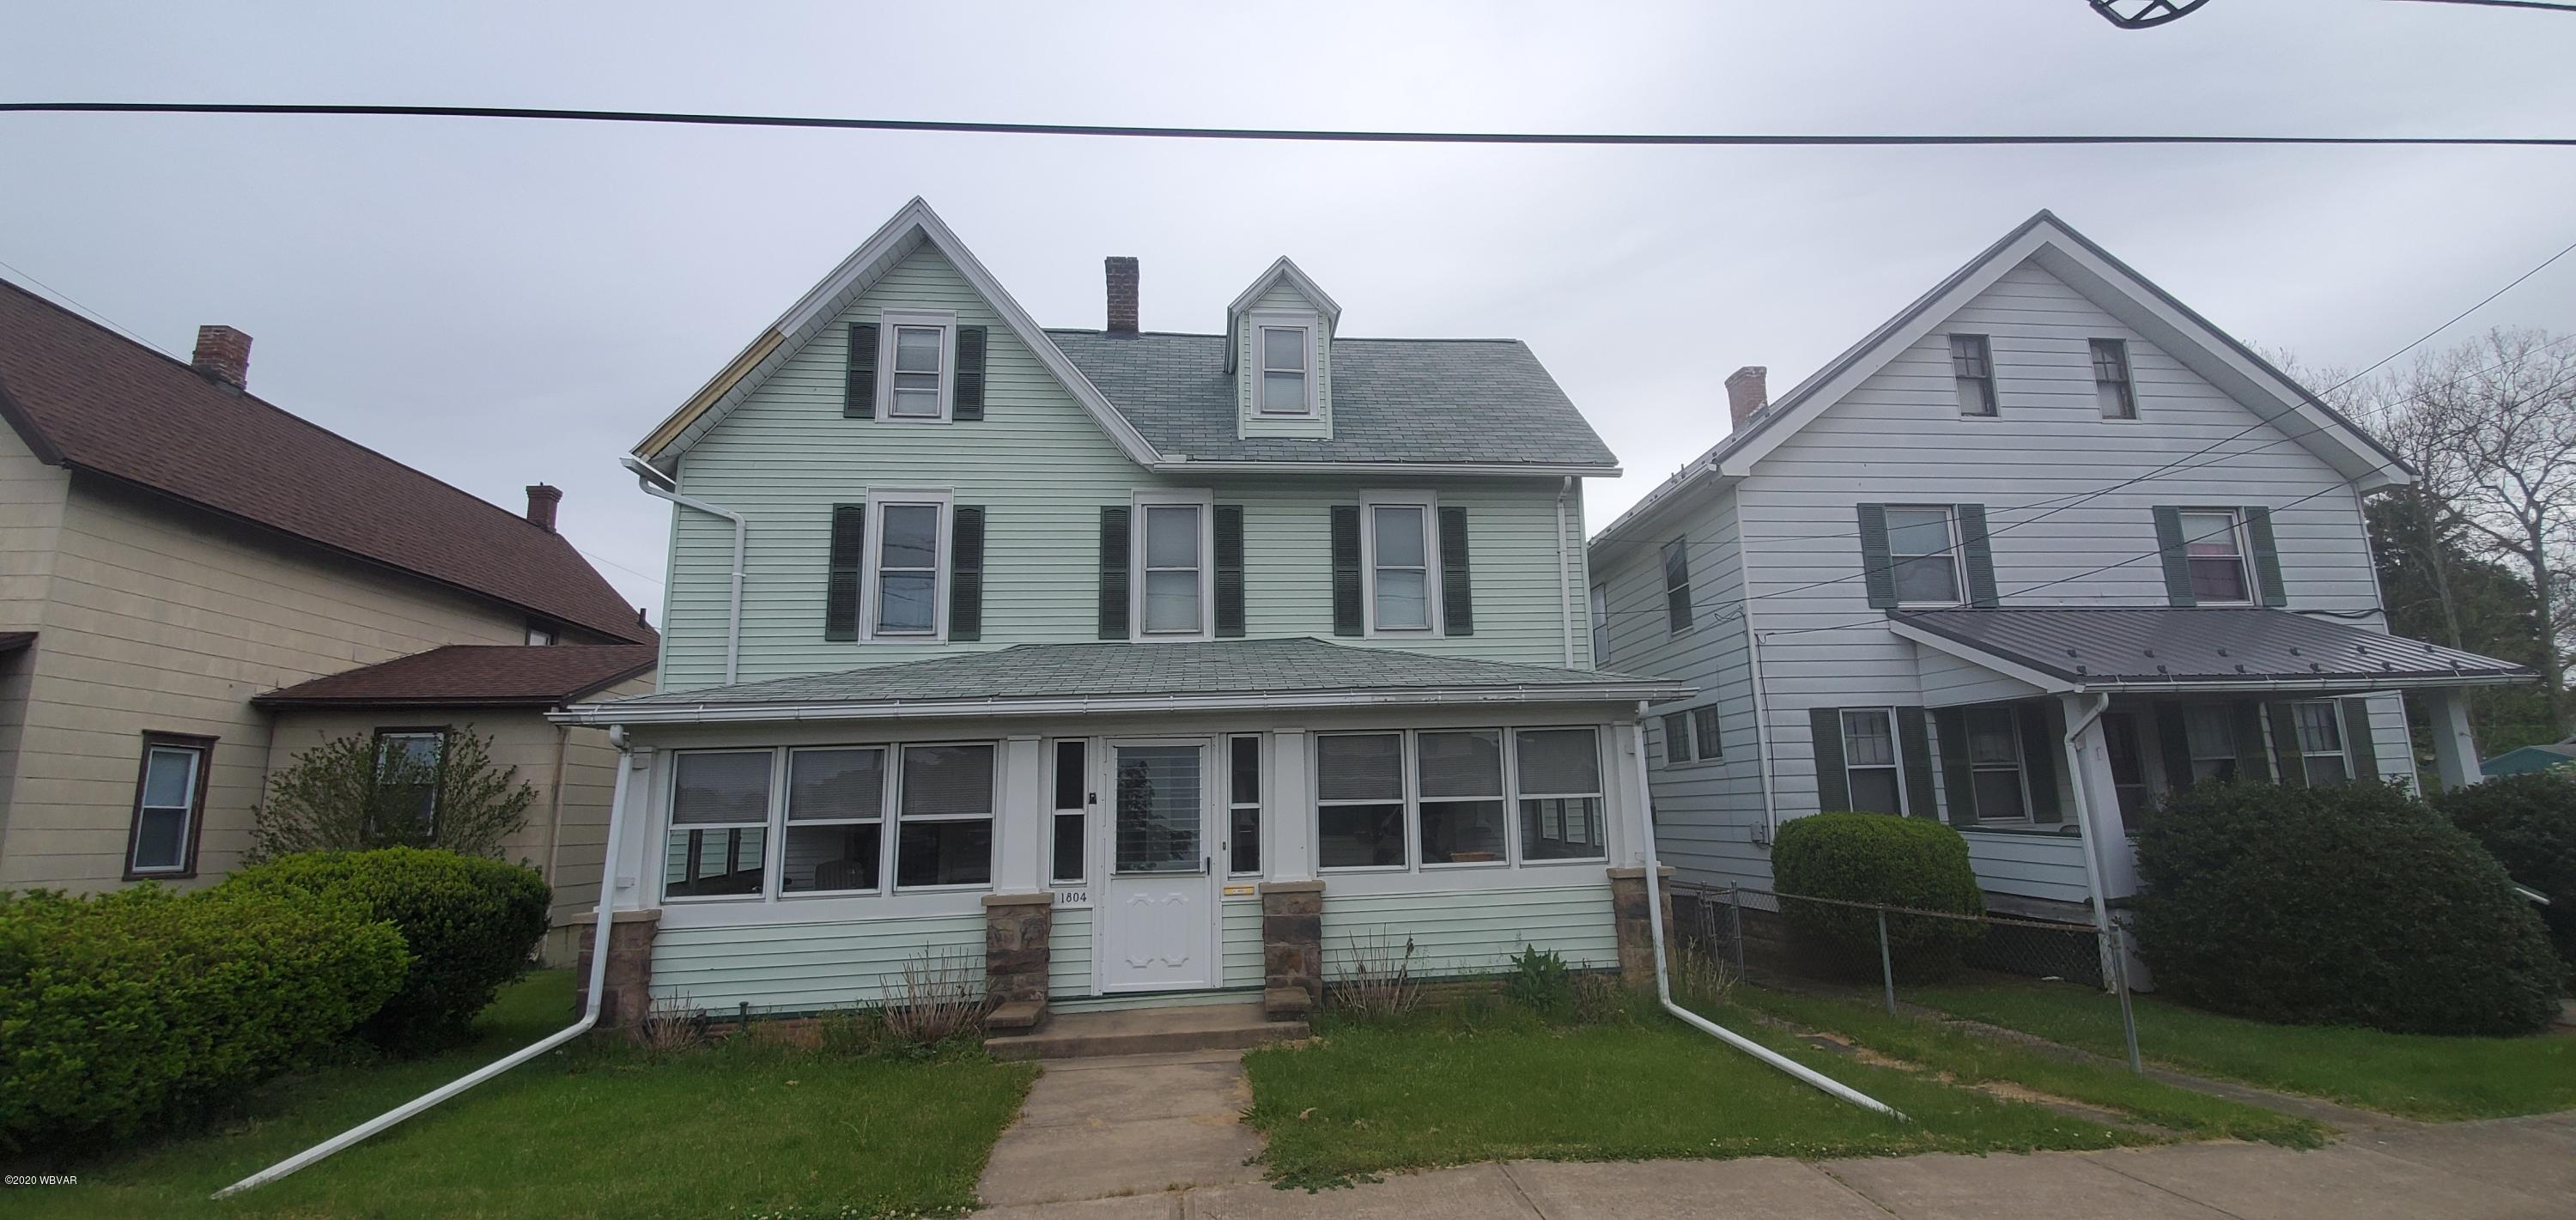 1804 MEMORIAL AVENUE,Williamsport,PA 17701,4 Bedrooms Bedrooms,1 BathroomBathrooms,Residential,MEMORIAL,WB-90147